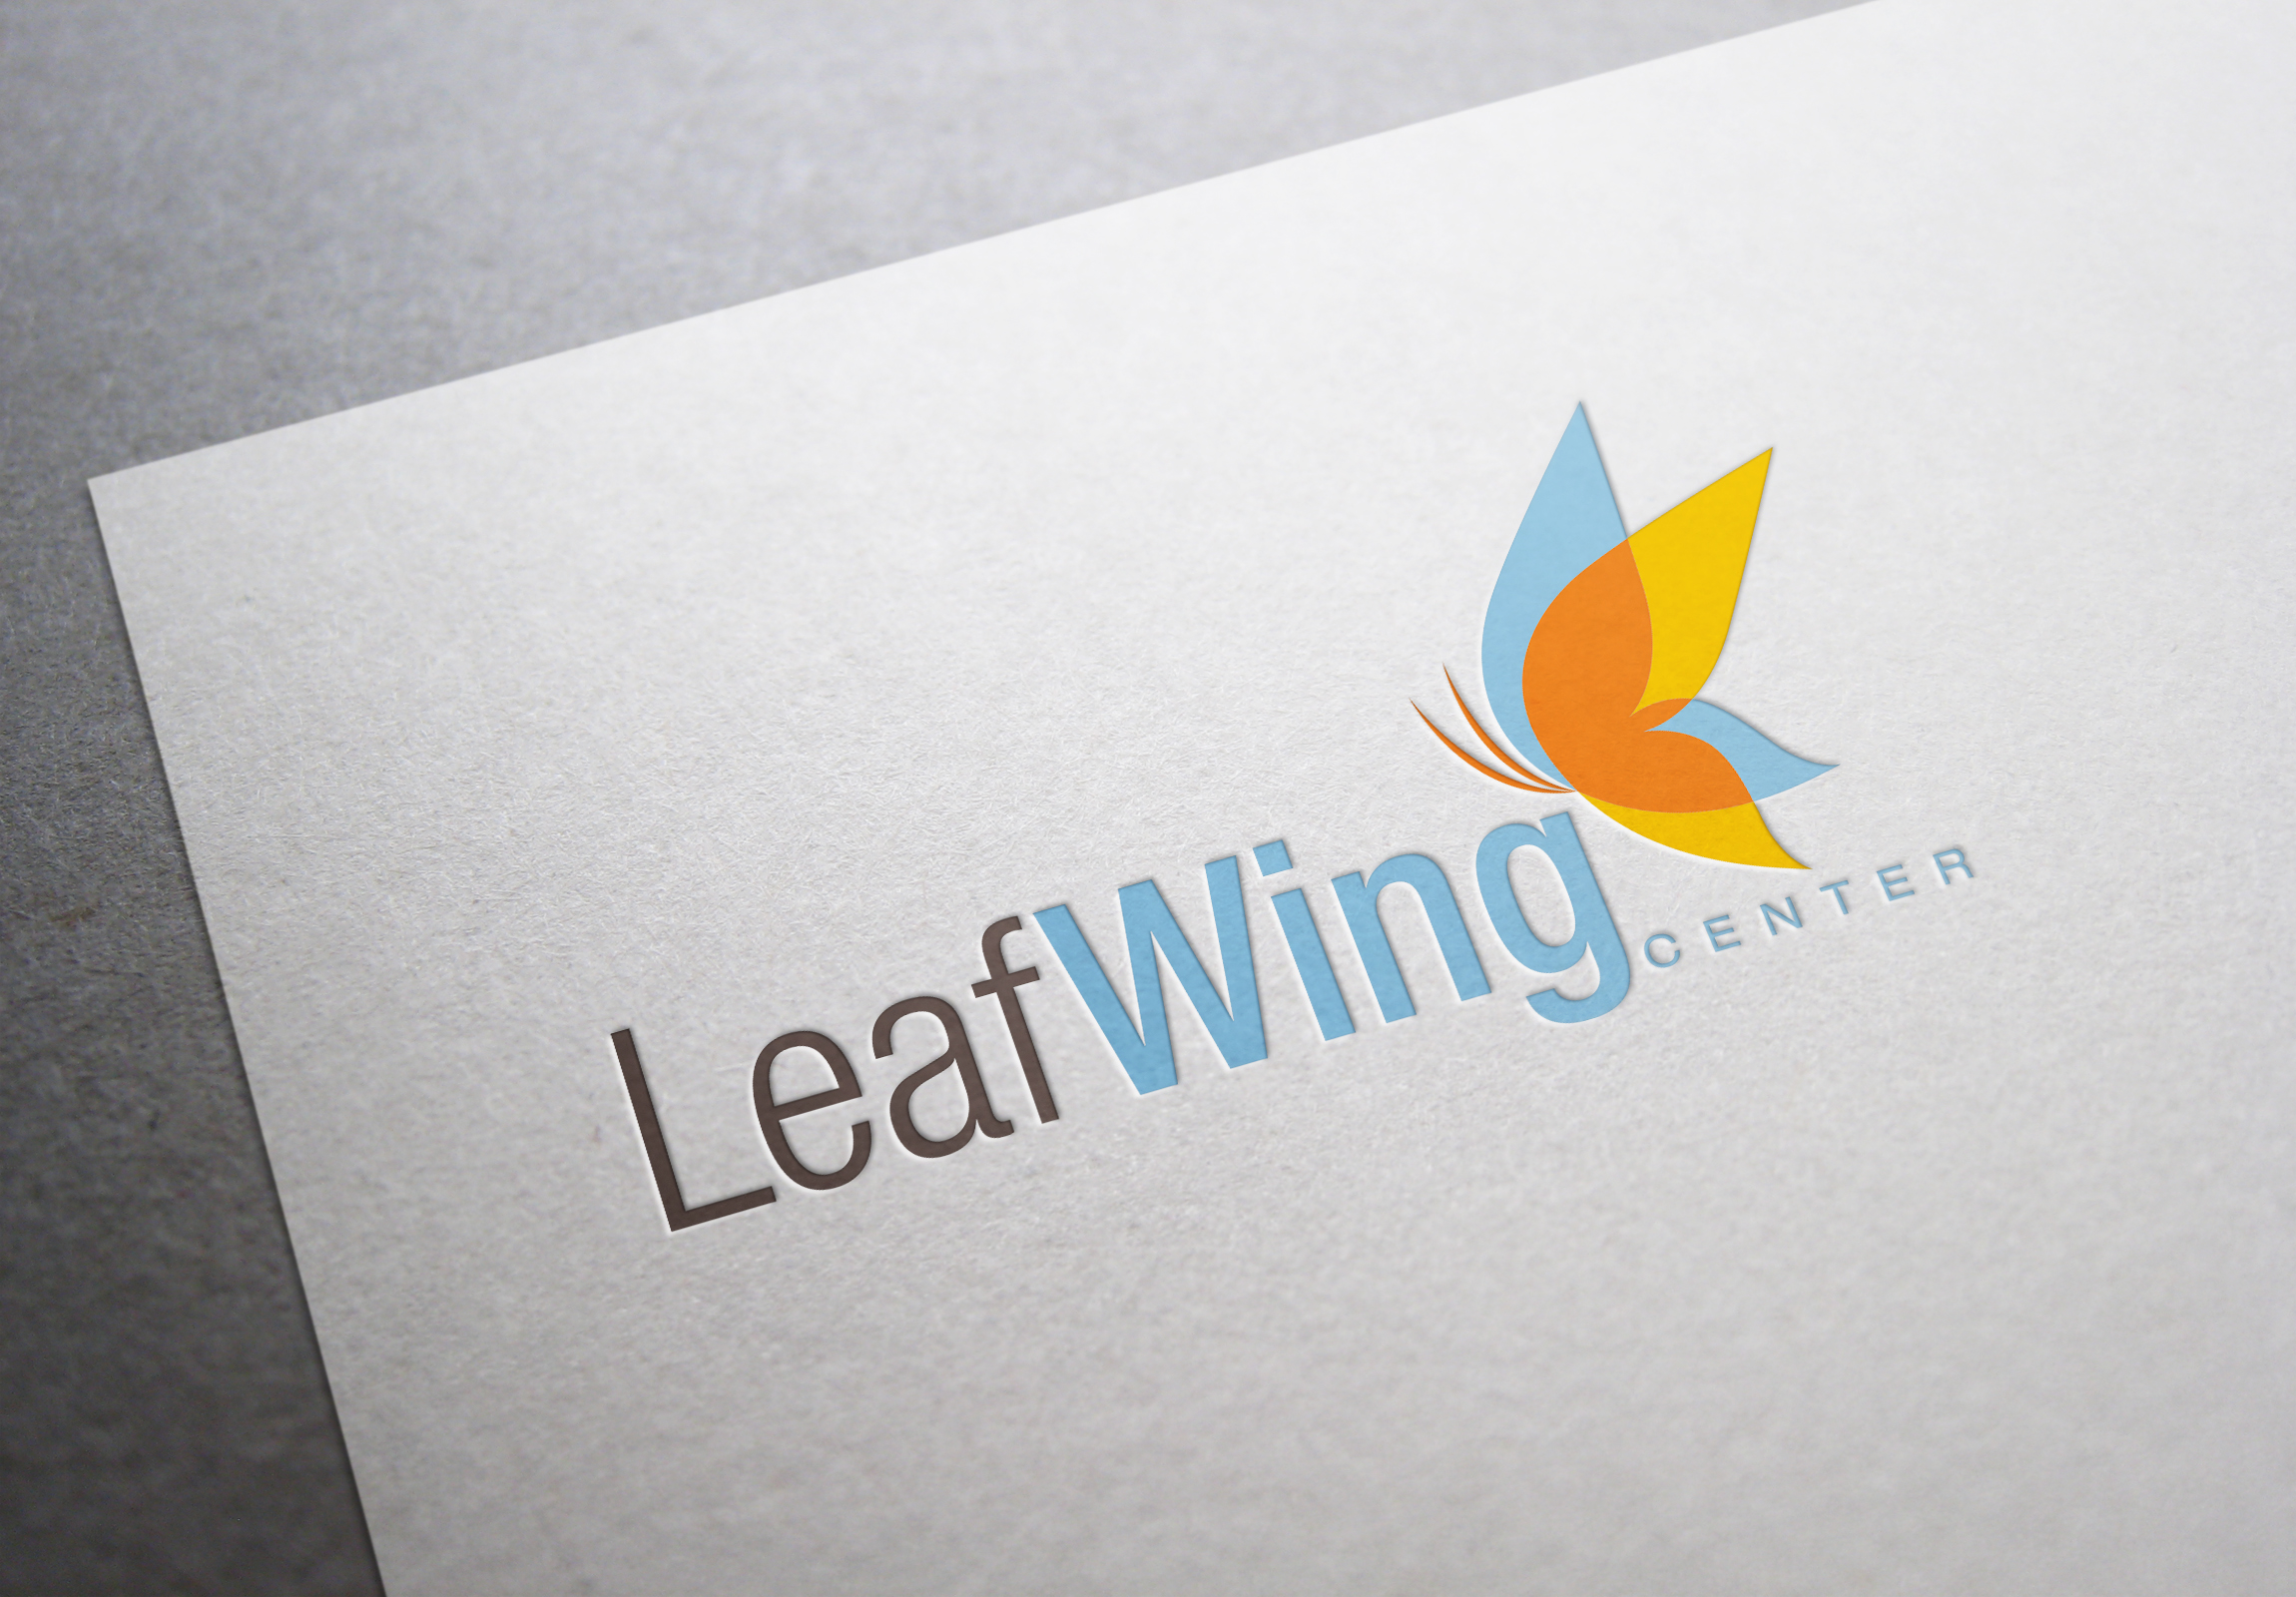 LeafWing Center Logo